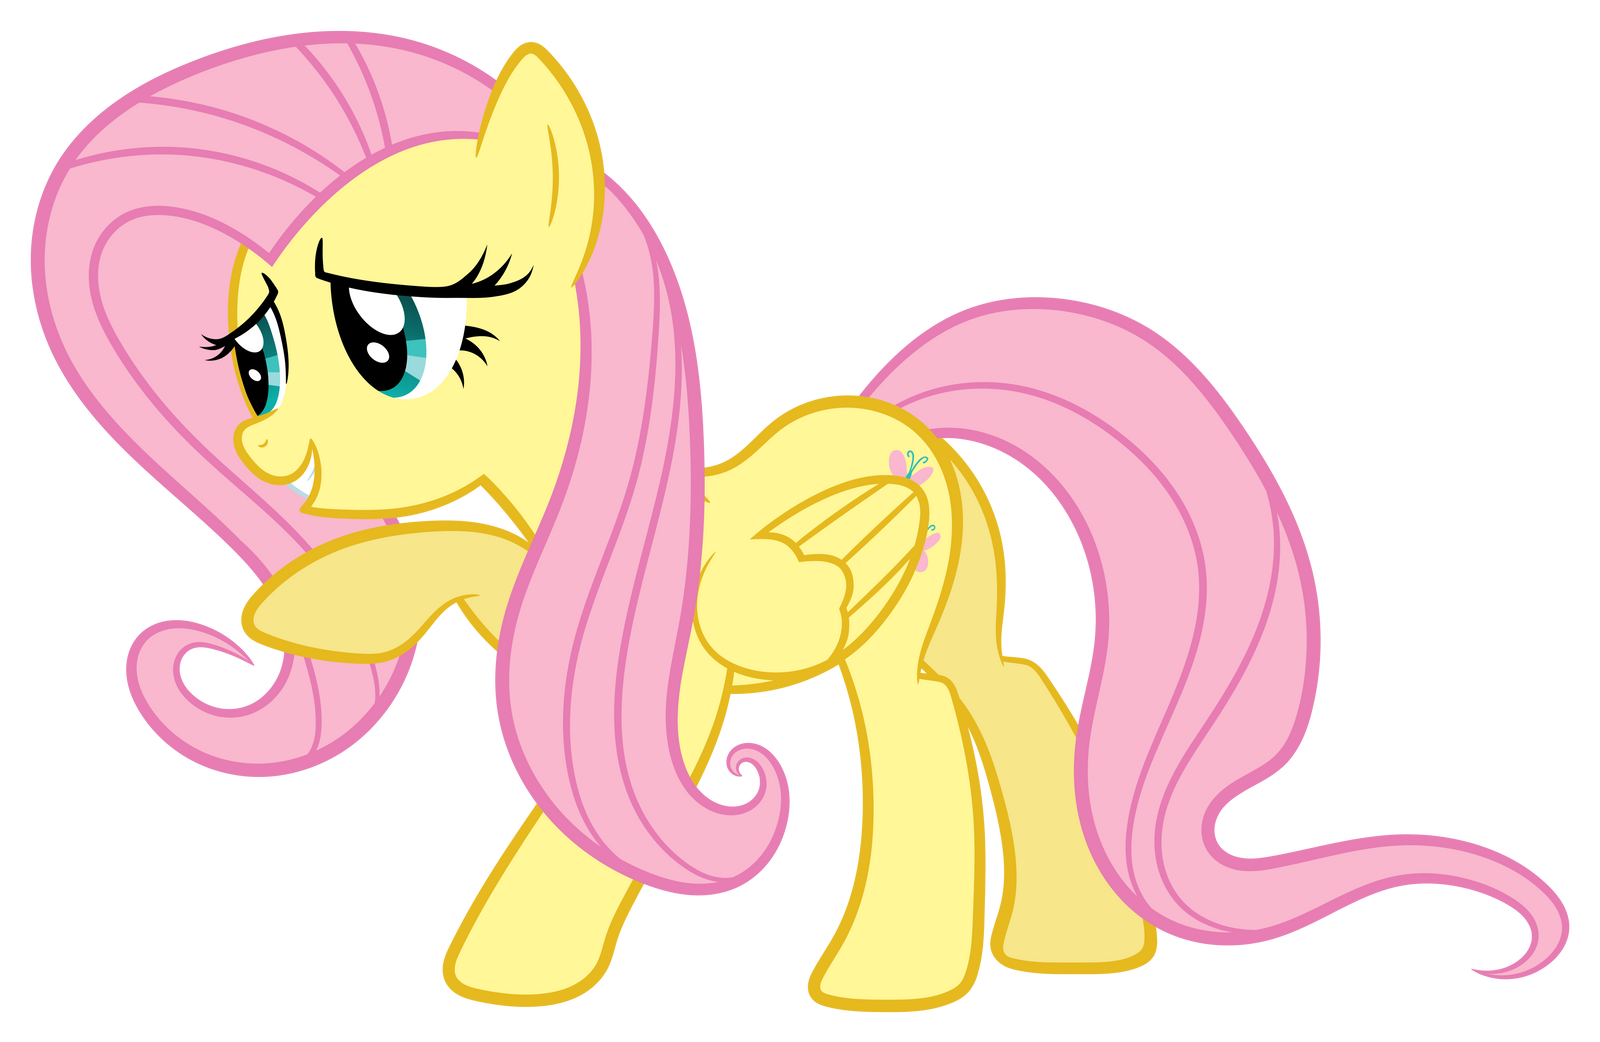 Fluttershy 'Pretty please' by Proenix